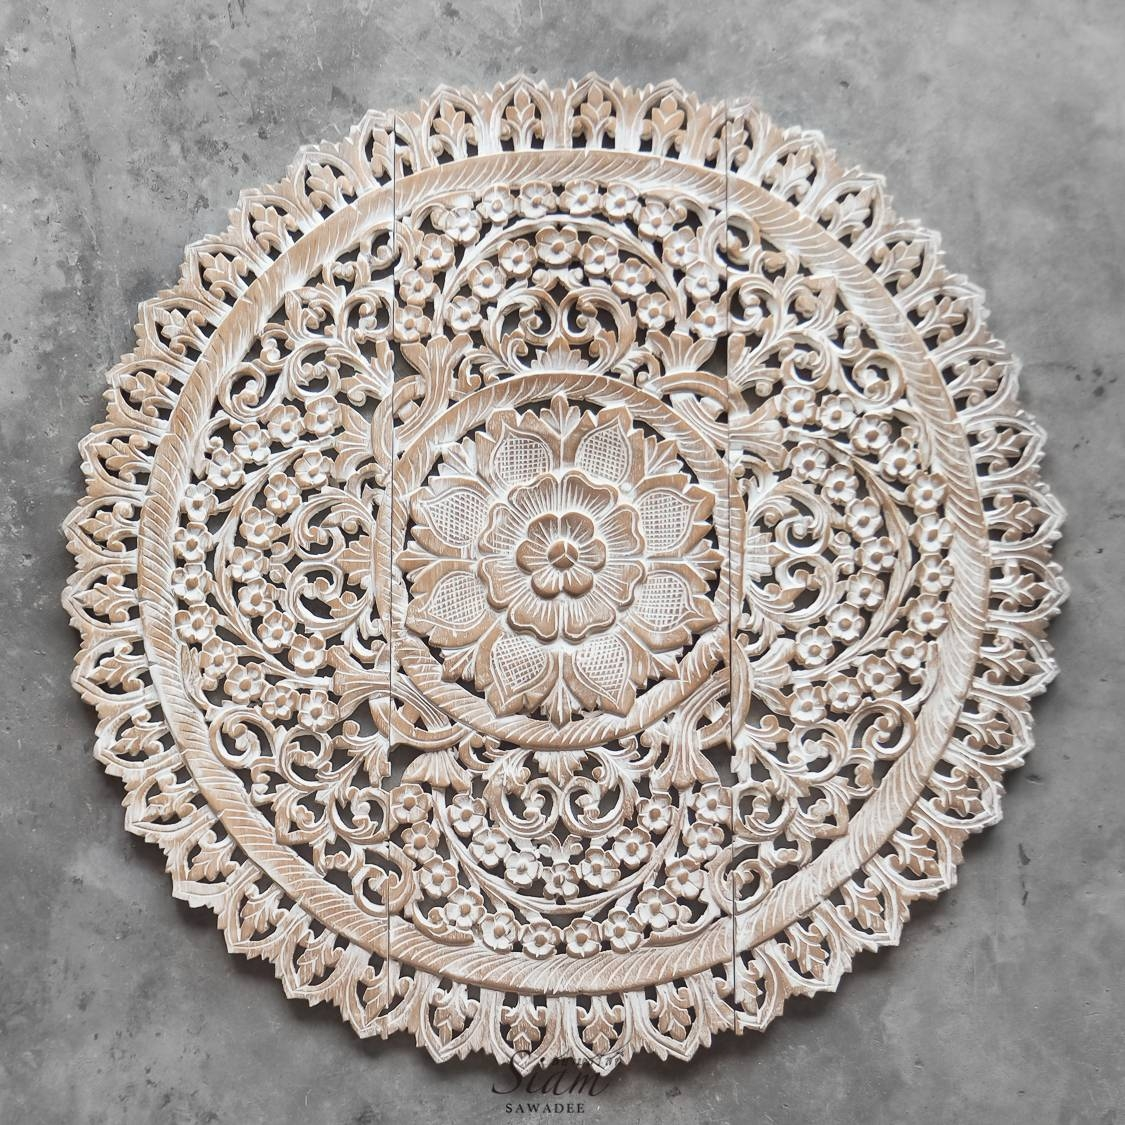 Mandala Wood Carving Wall Panel Decor – Siam Sawadee Throughout Most Recent Wood Carved Wall Art Panels (View 13 of 25)